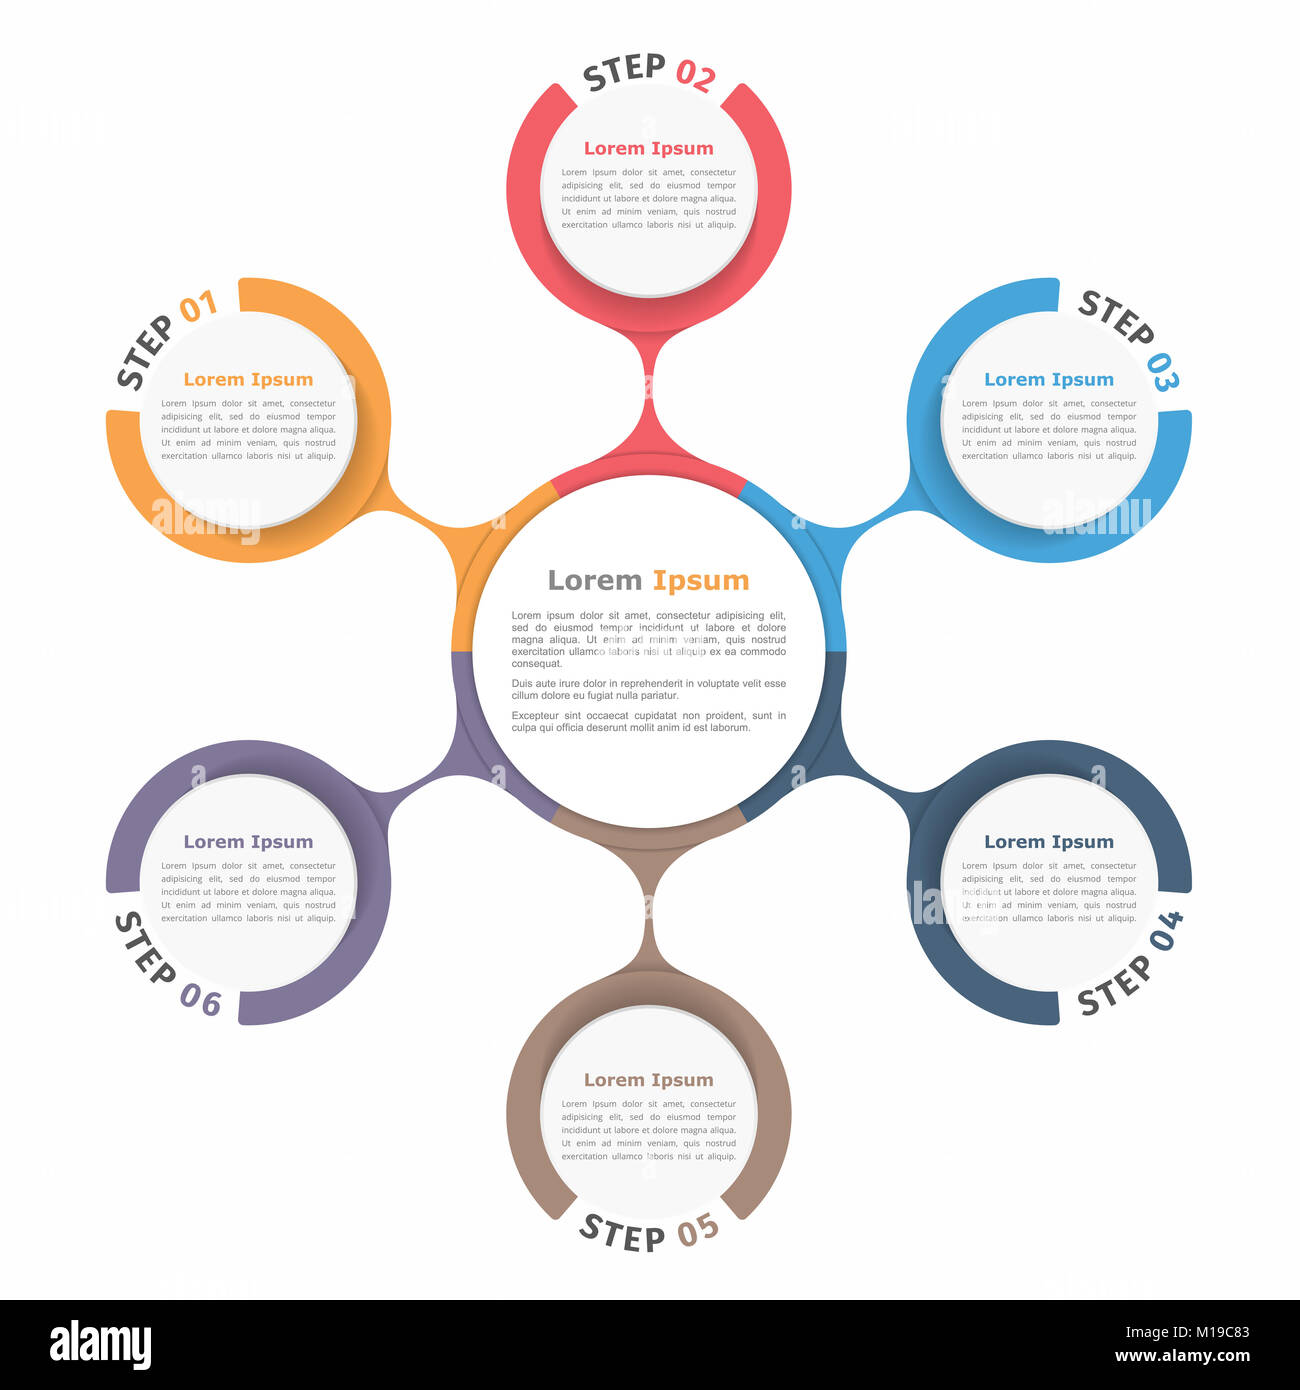 Circle diagram with six elements steps or options flowchart or circle diagram with six elements steps or options flowchart or workflow diagram template vector eps10 illustration ccuart Images